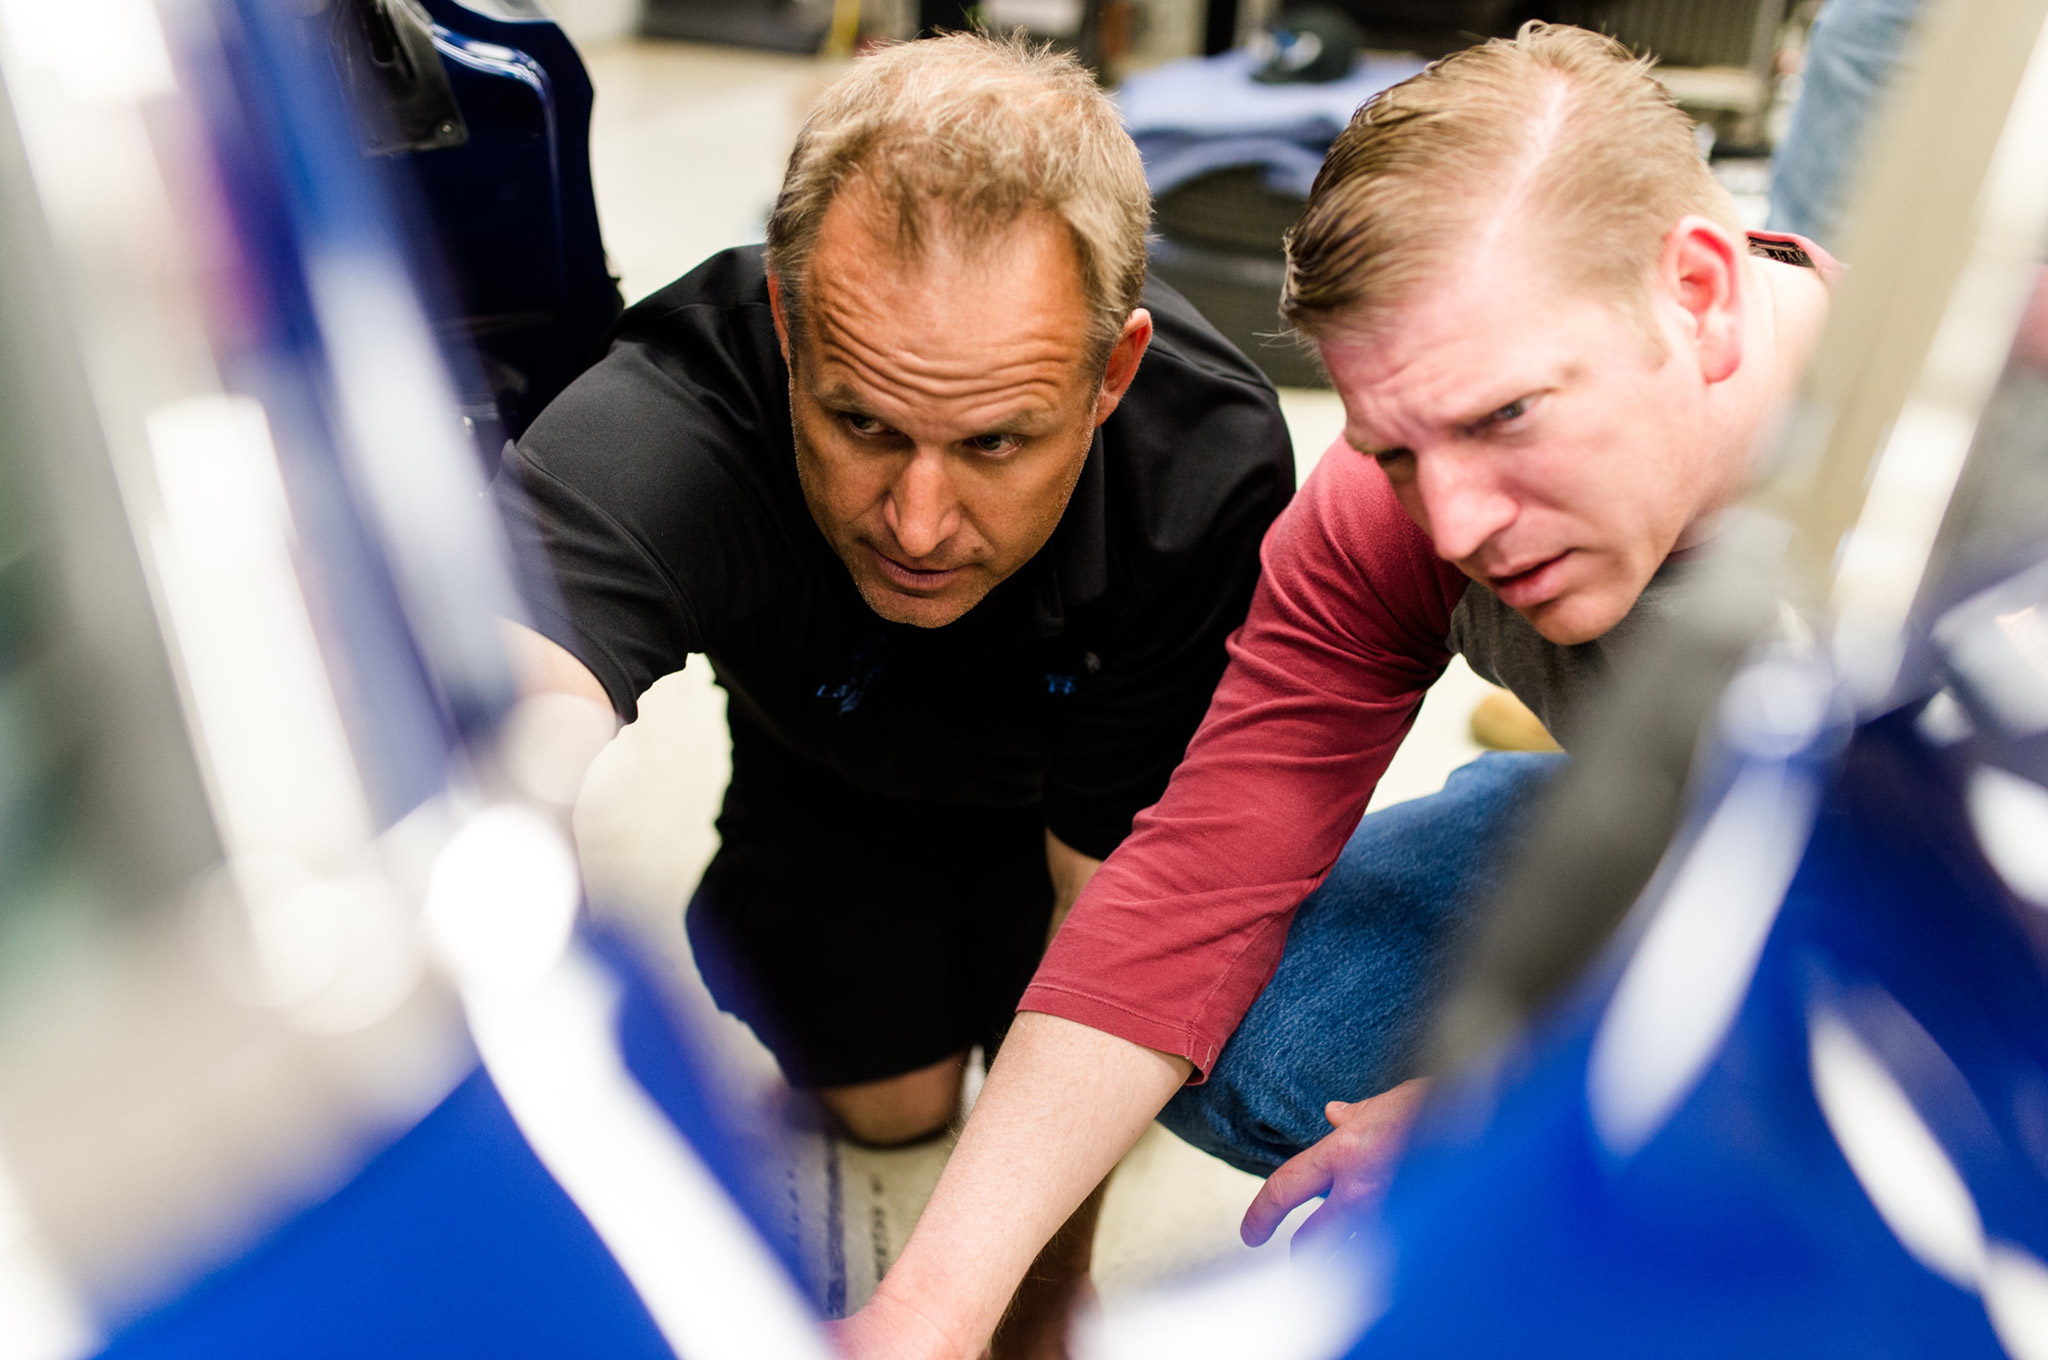 Troy, left, explains to David some of the new modifications made to the car. Here they're taking a look at the loop on the throttle pedal that allows the driver's foot to pull the throttle back up in case it gets stuck.